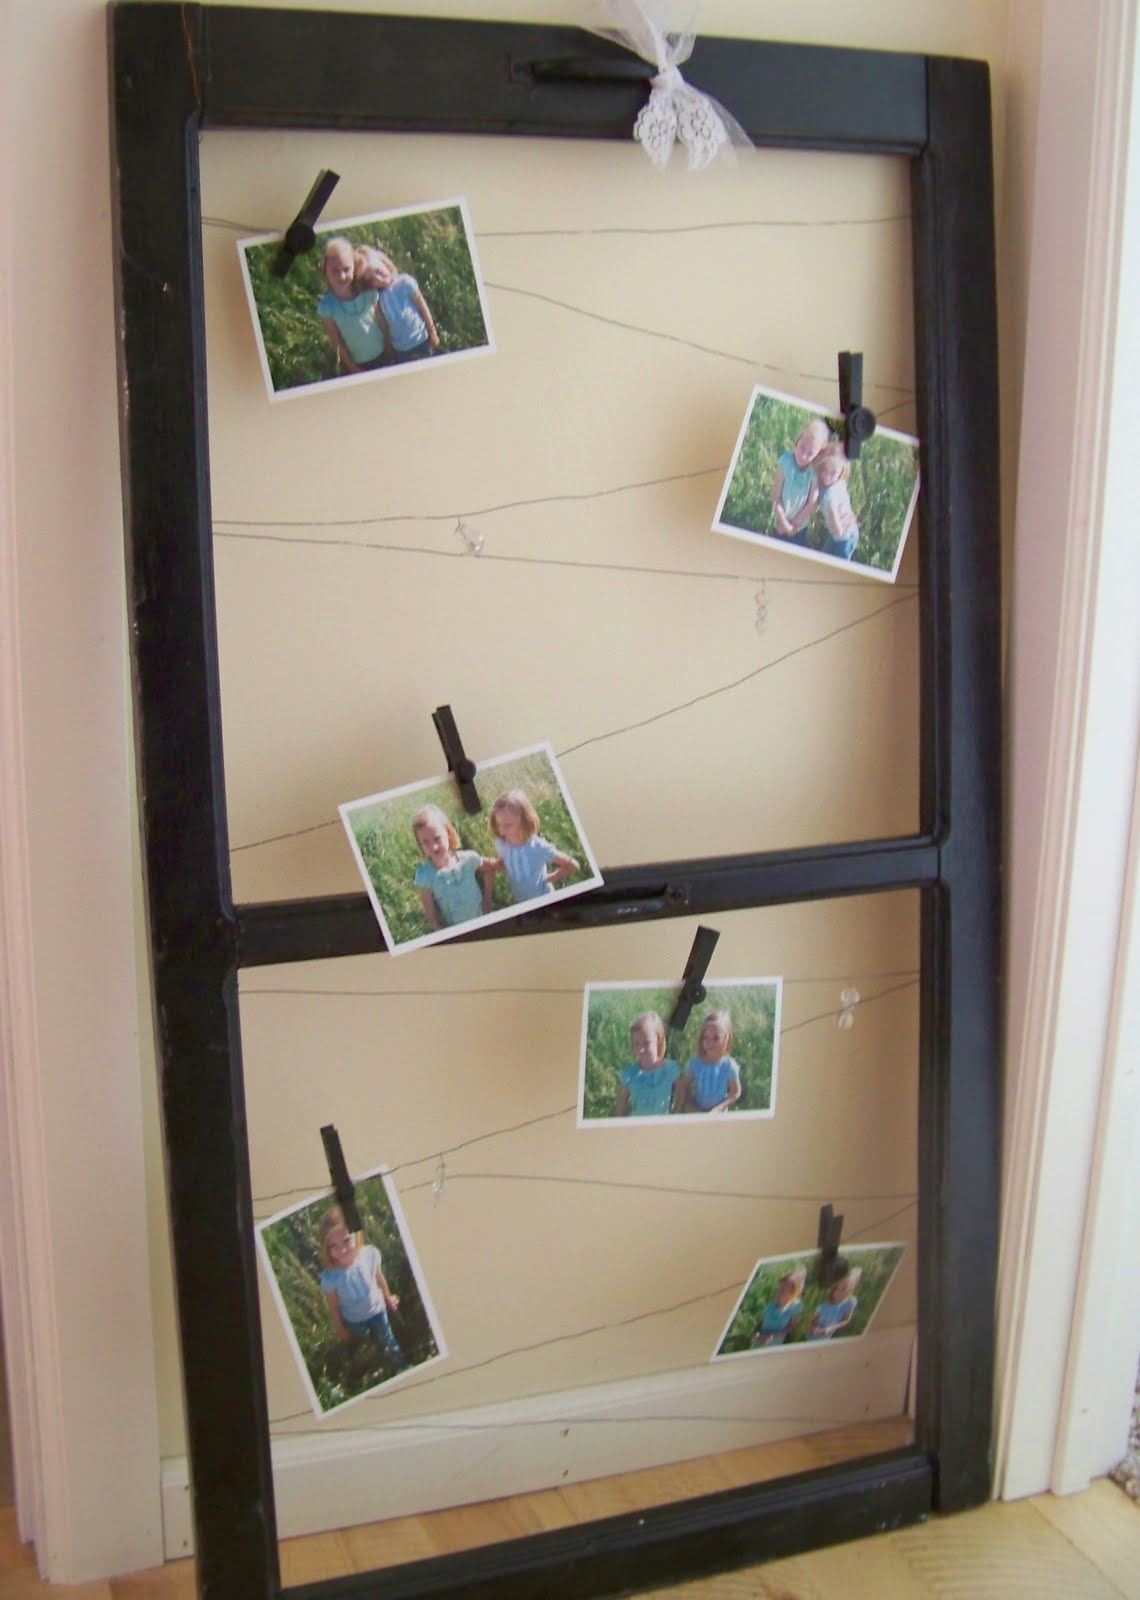 Using old window frames to decorate (she:jami) - Or so she says...